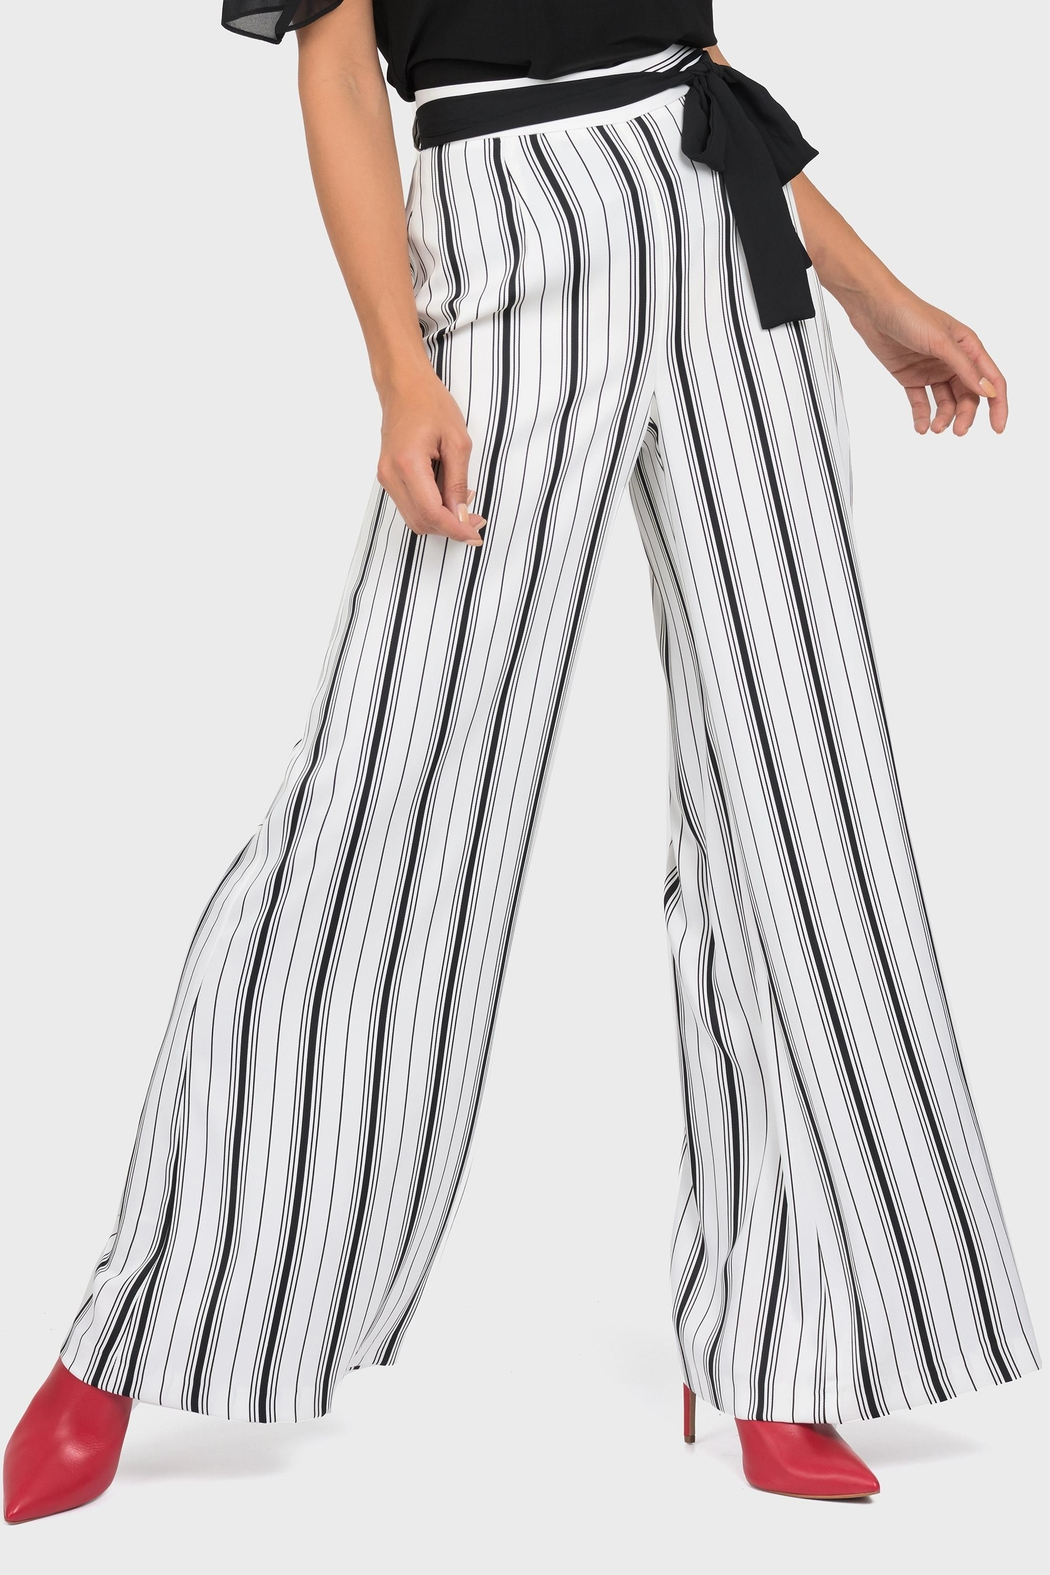 Joseph Ribkoff Belted Wide-Leg Pant - Front Cropped Image